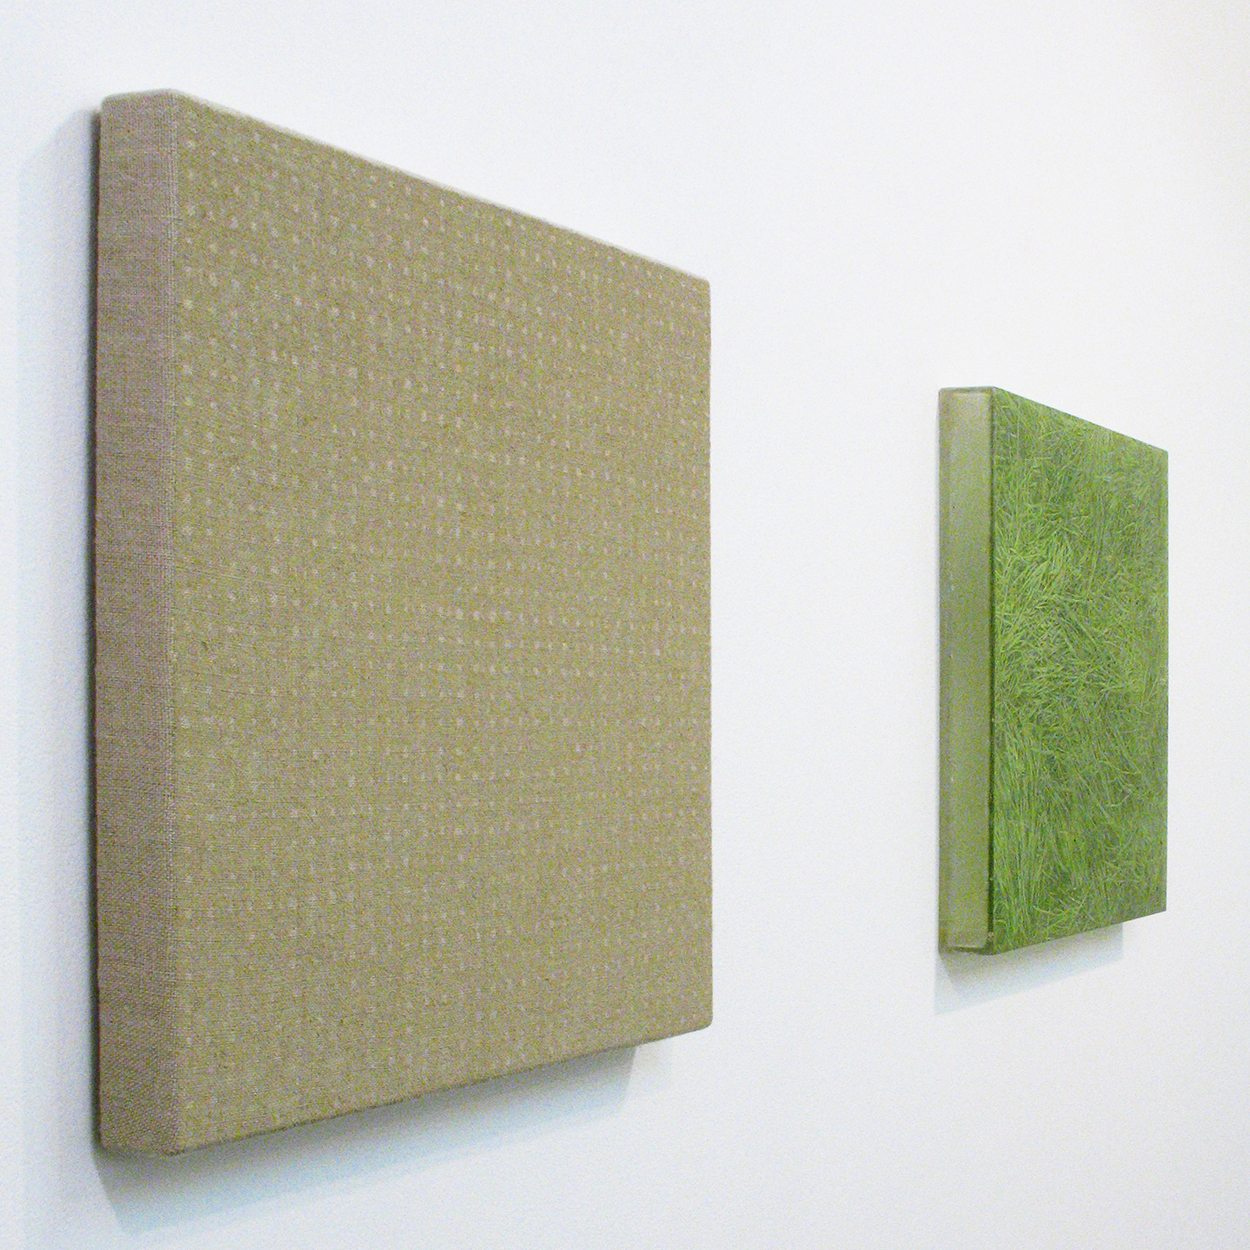 Hemp-square series|acrylic on canvas|42.5 x 42.5 cm|2006 (left)<br>Photo painting-bush 叢|oil on polyester resin panel and mixed media|42.5 x 42.5 cm|2008 (right)